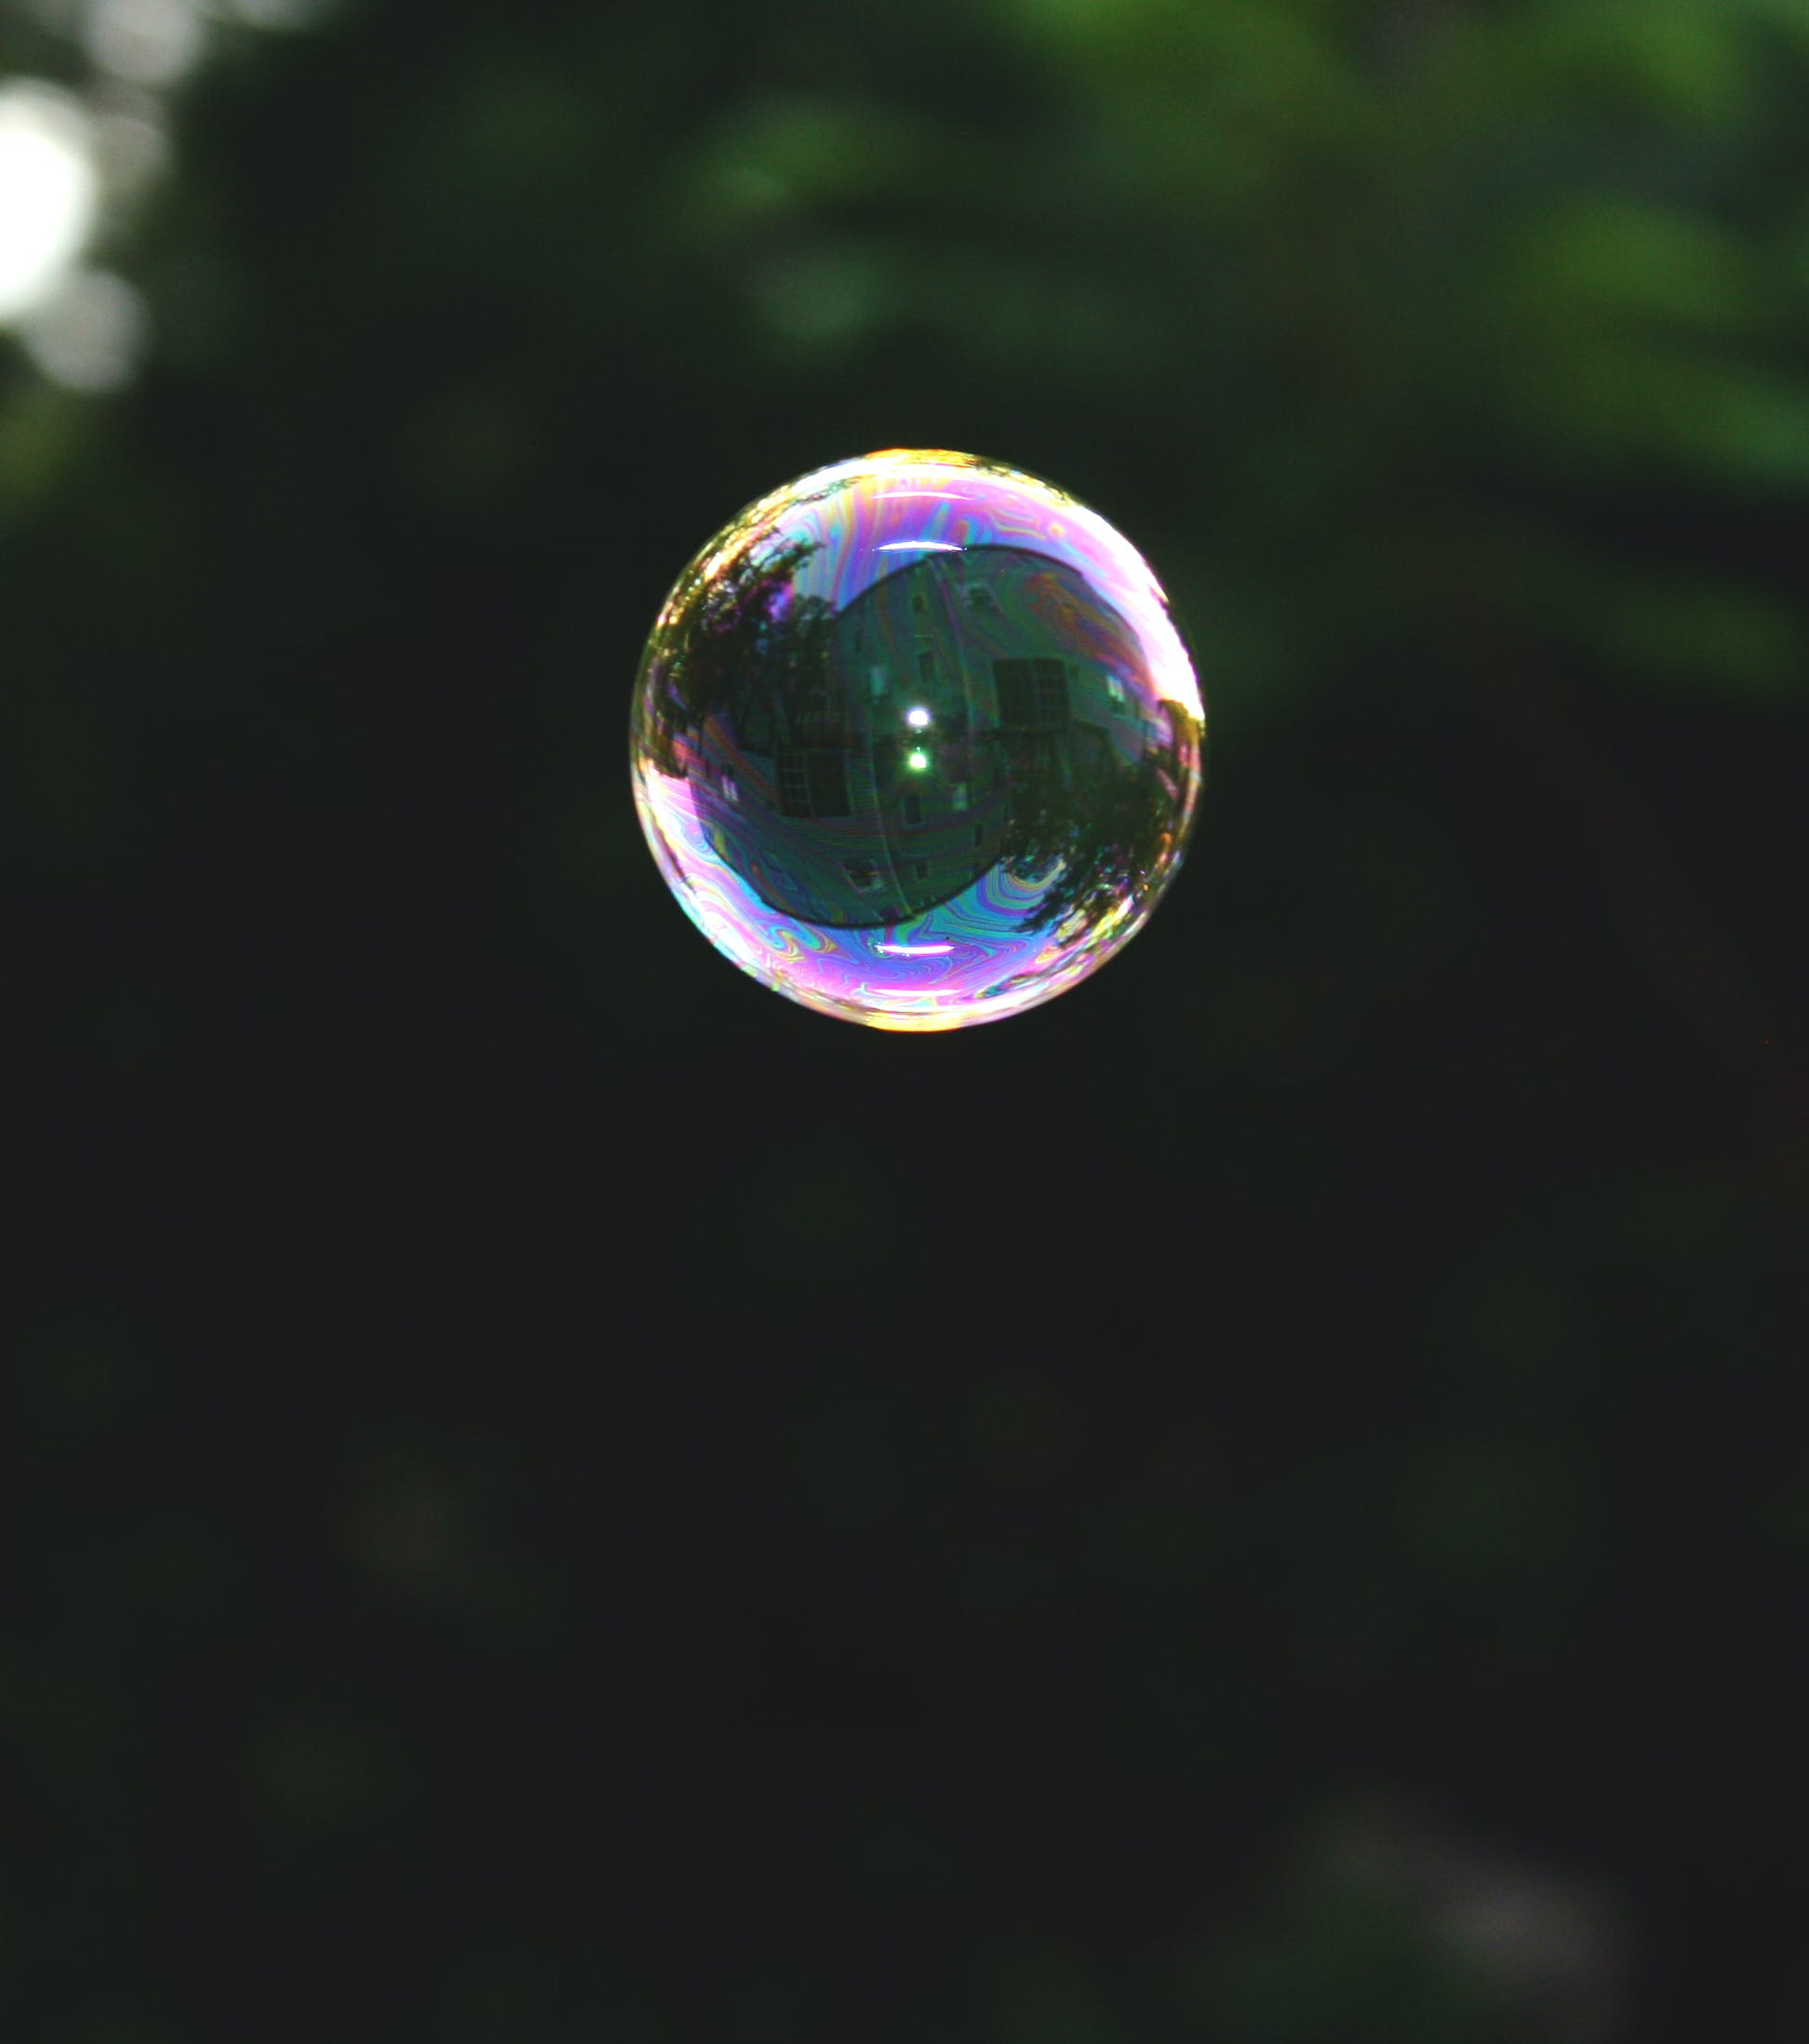 Free stock photo of bubble